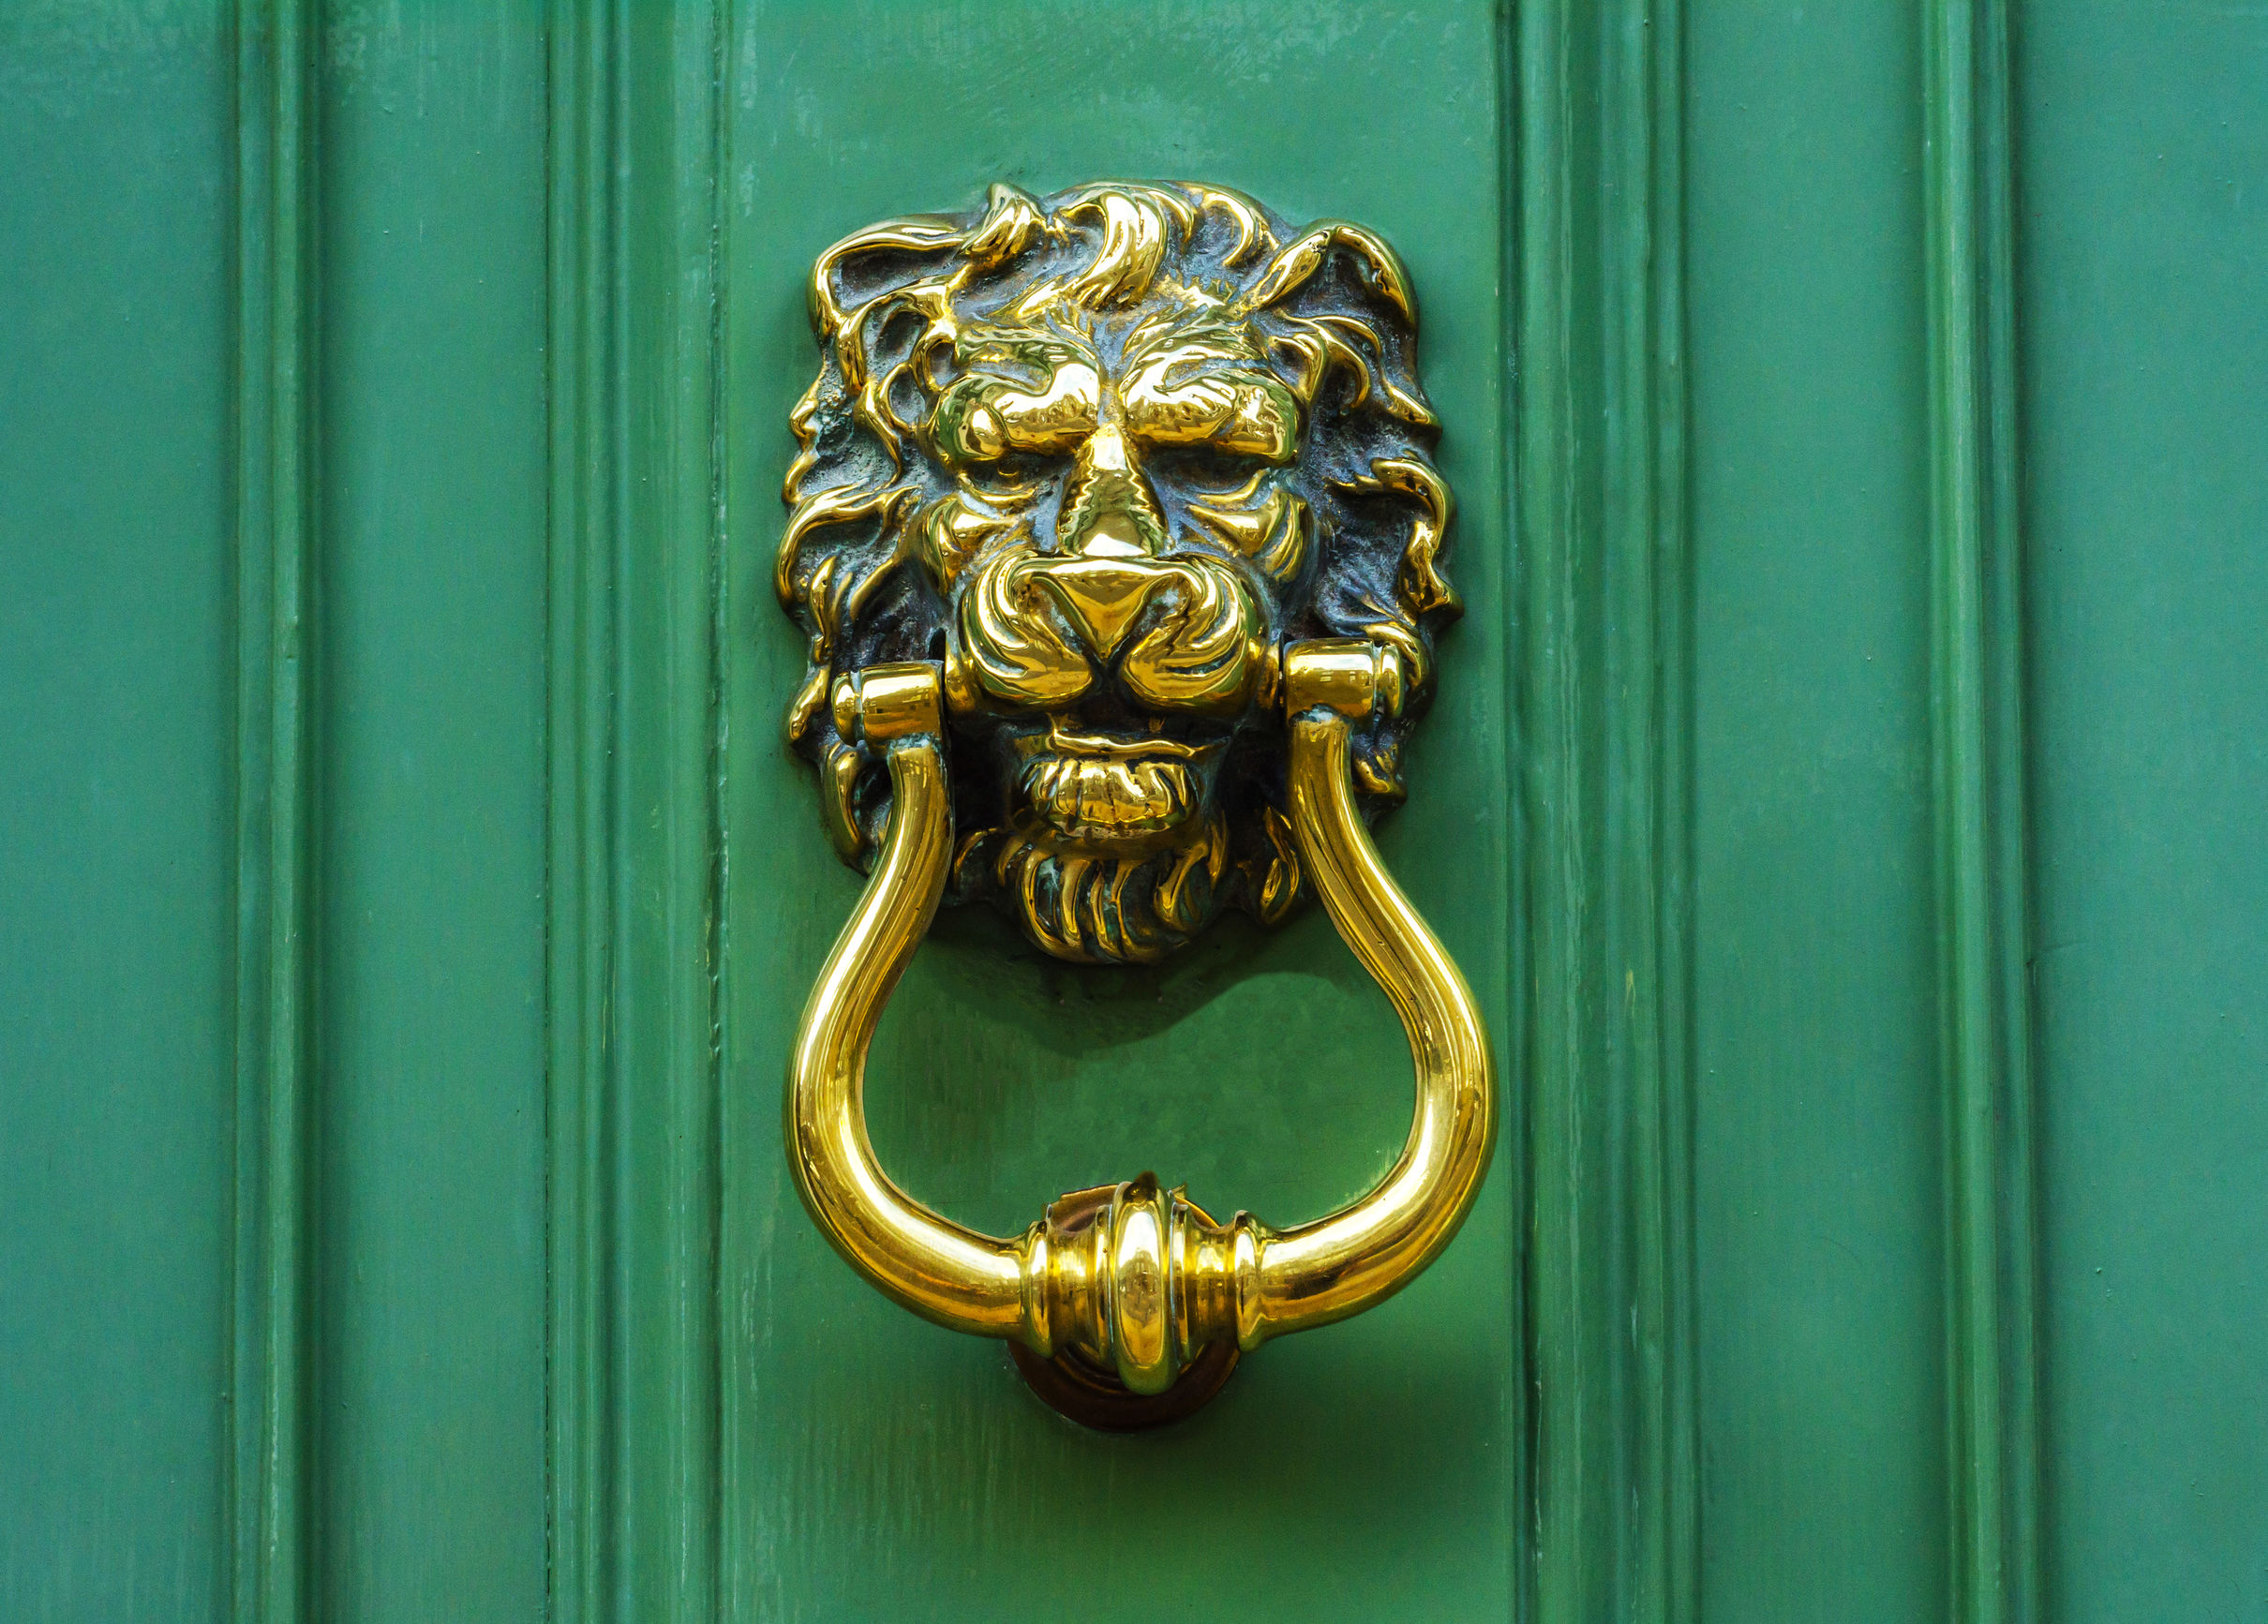 Door with brass knocker in the shape of a lion's head, beautiful